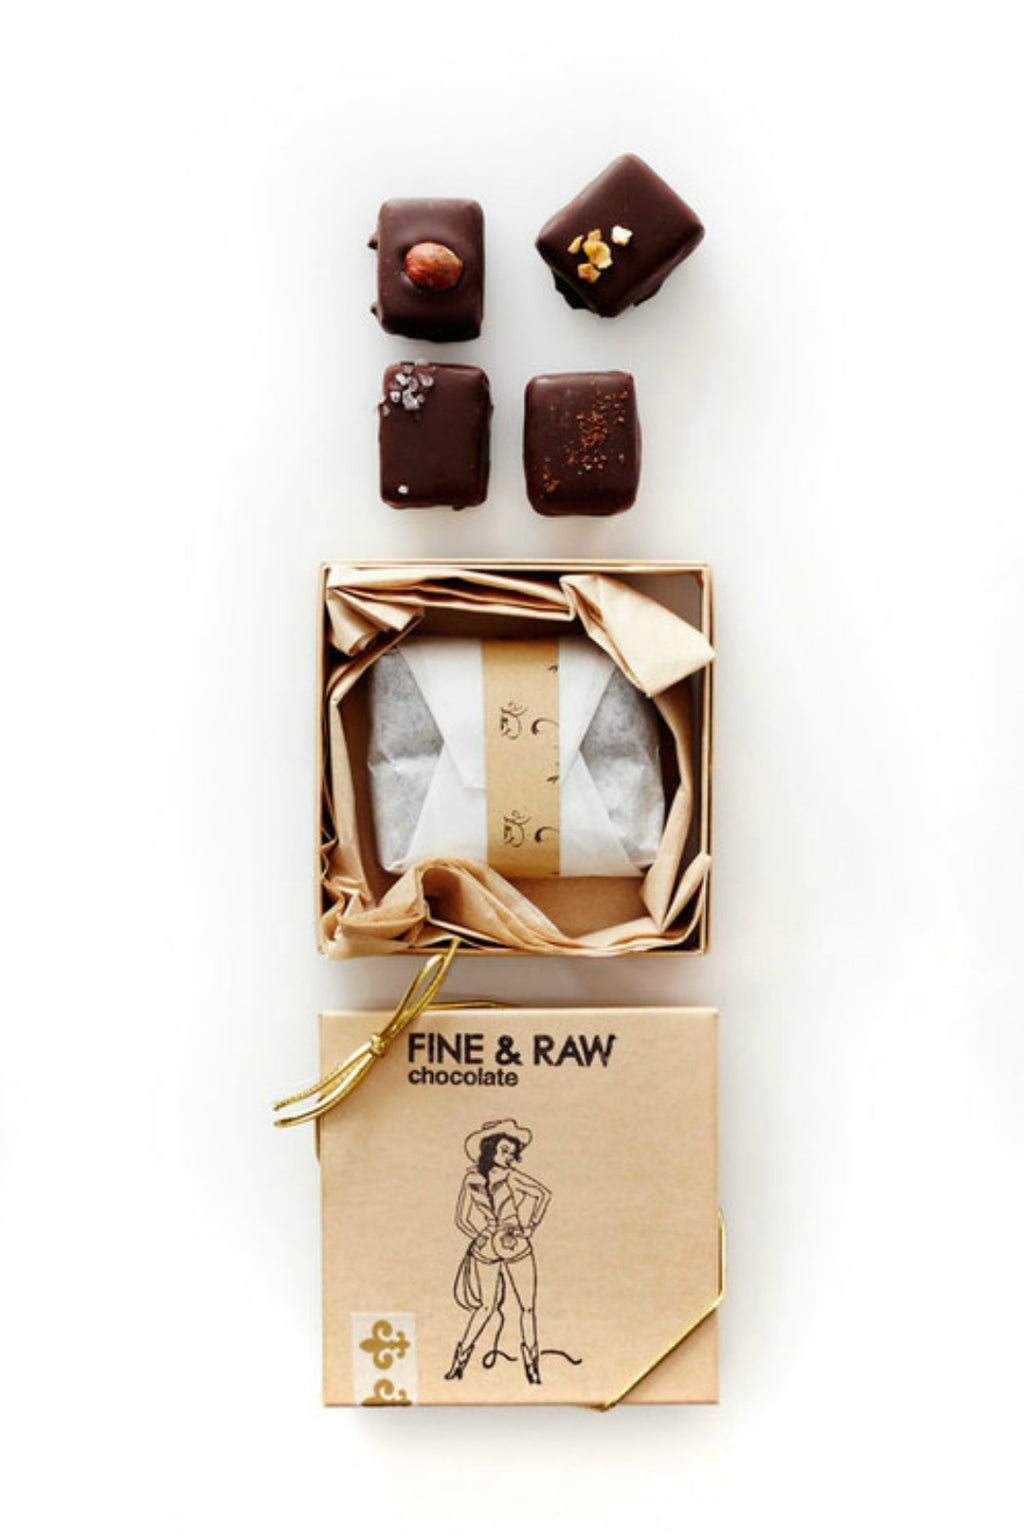 FINE & RAW 4 Piece - Mixed Truffle Box